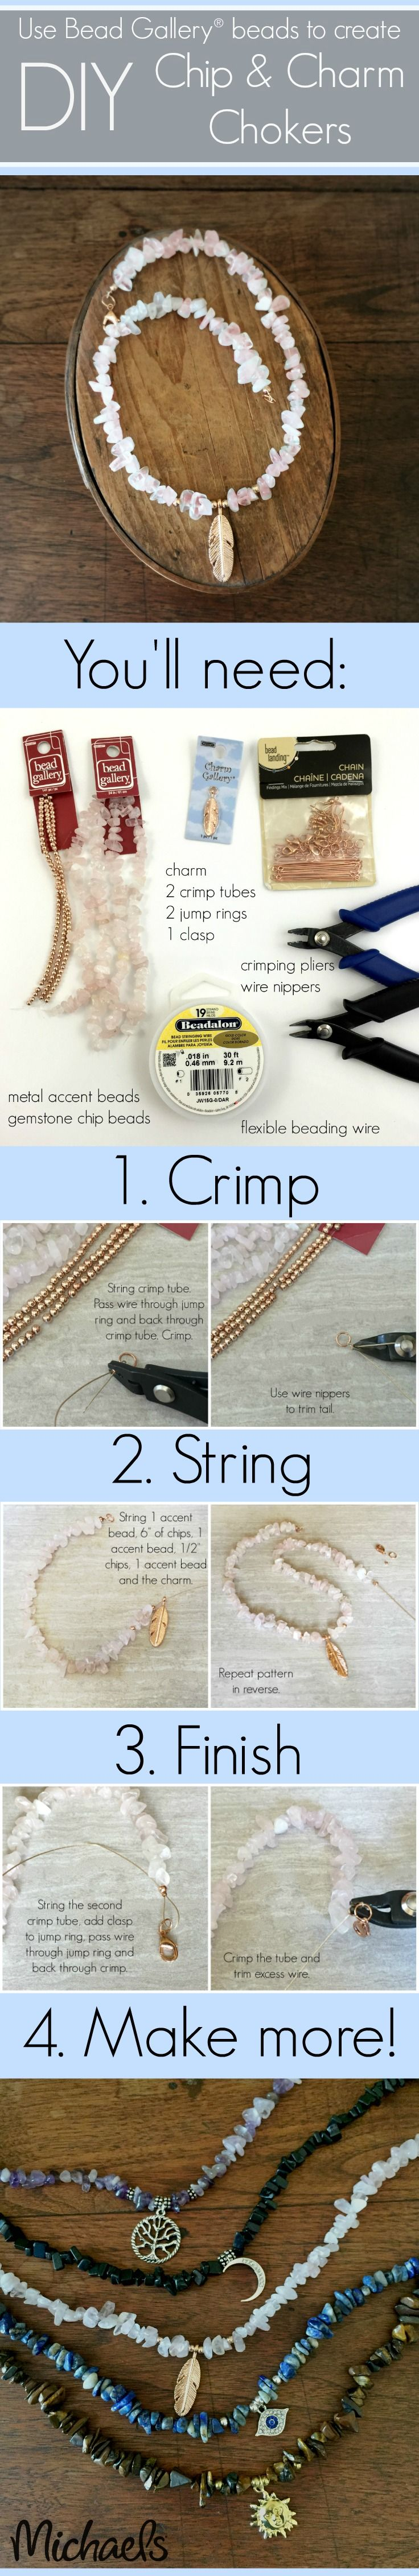 Use your favorite color chip beads to make this easy DIY stylish Chip and Charm Choker necklace